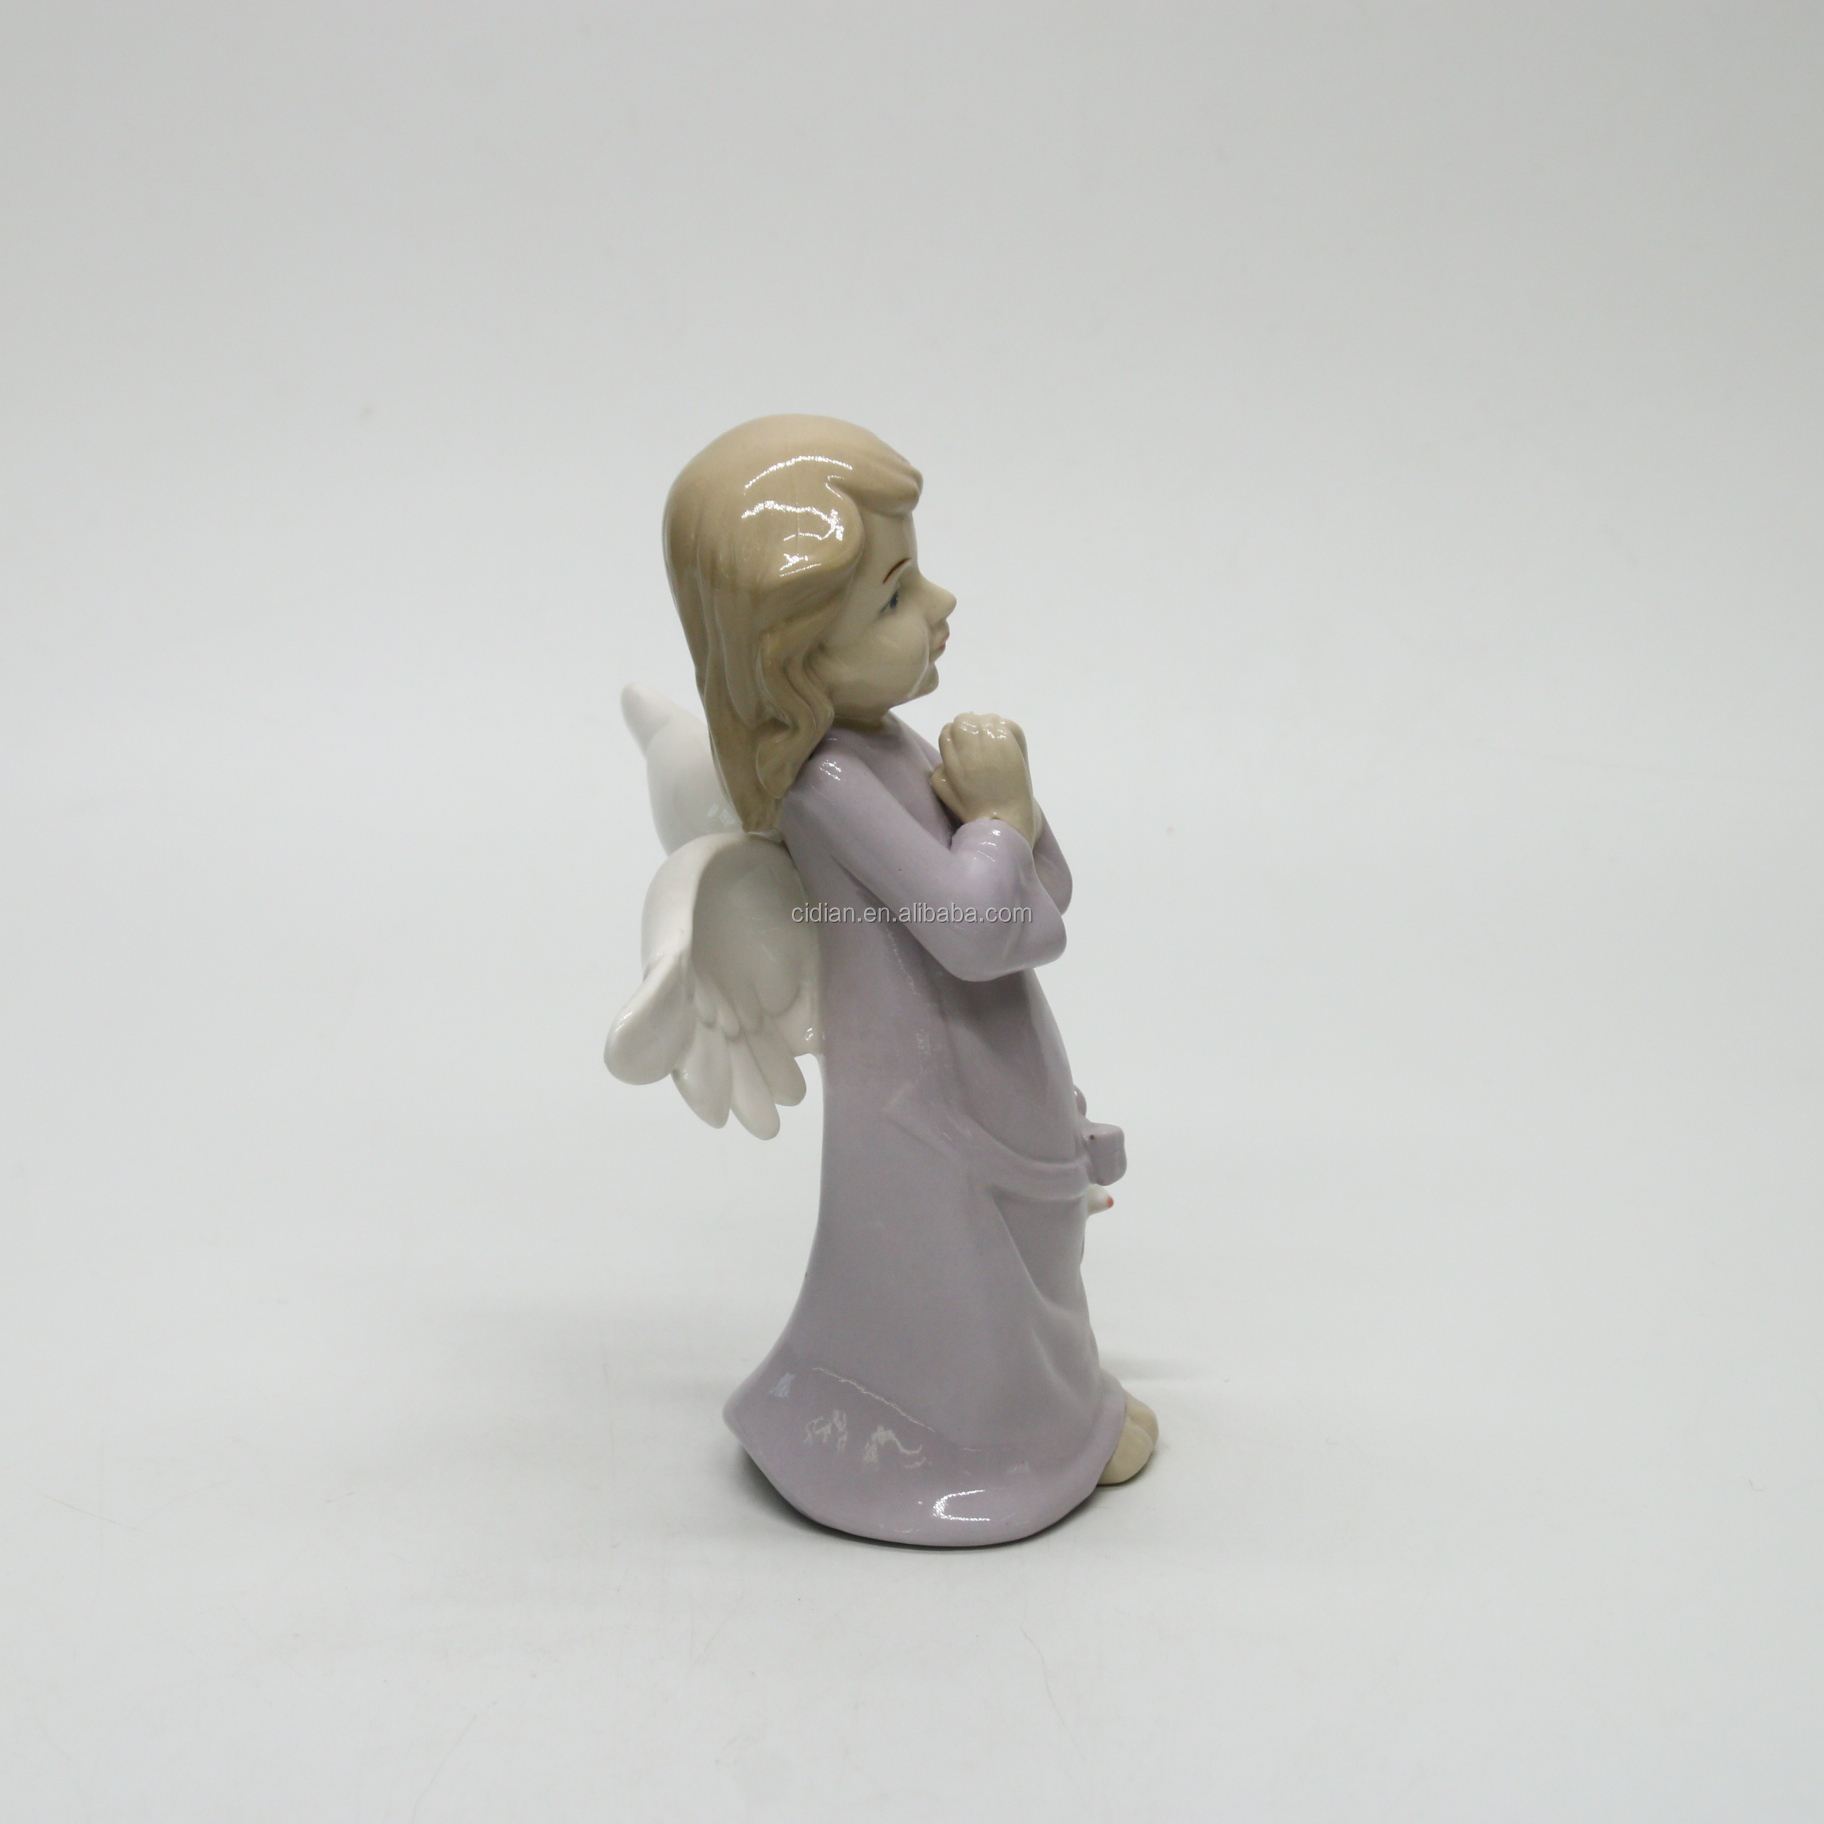 Pray porcelain angle standing figurines peace dove